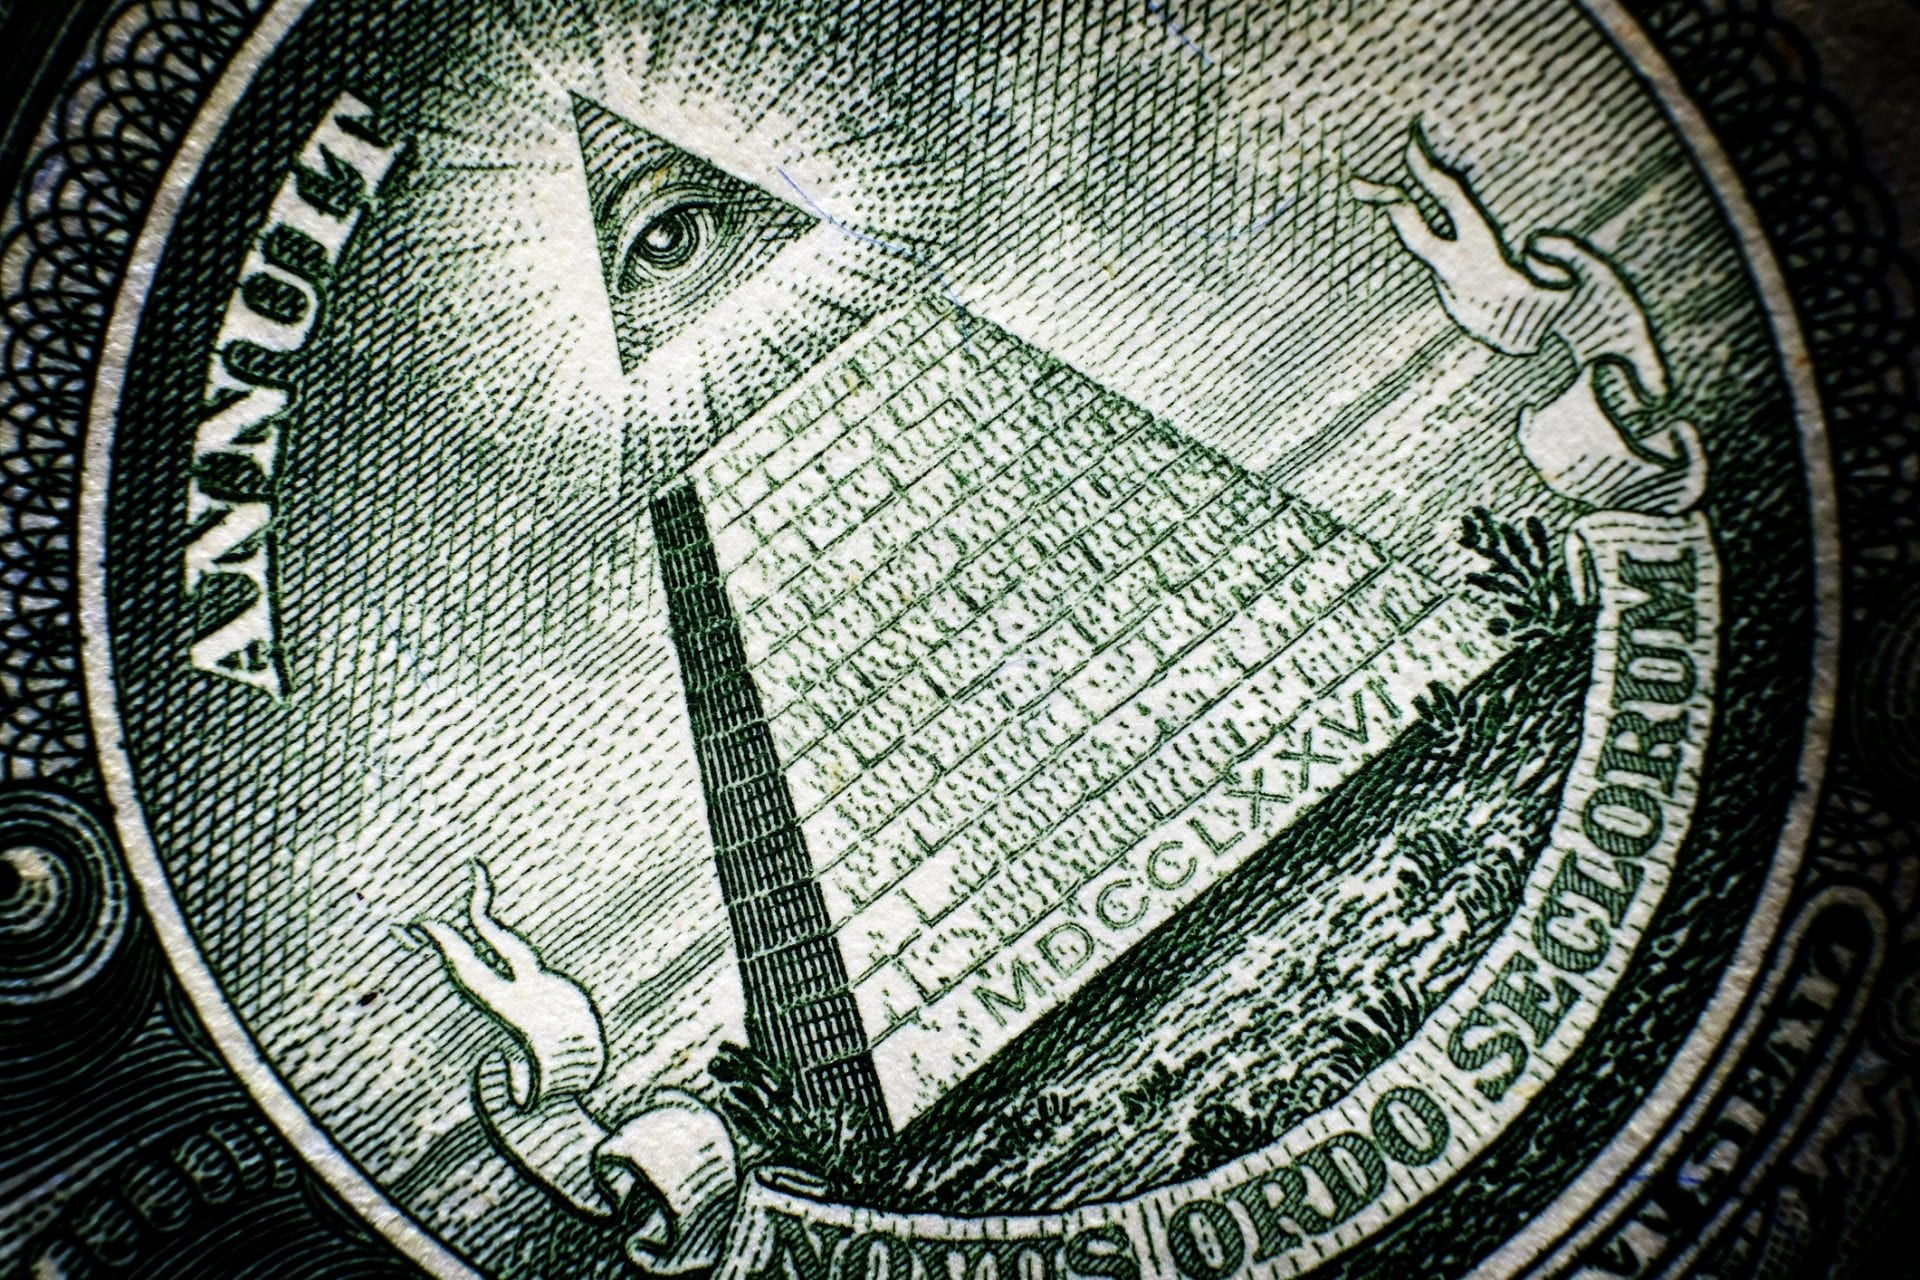 All Seeing Eye pyramid on back of dollar bill american money